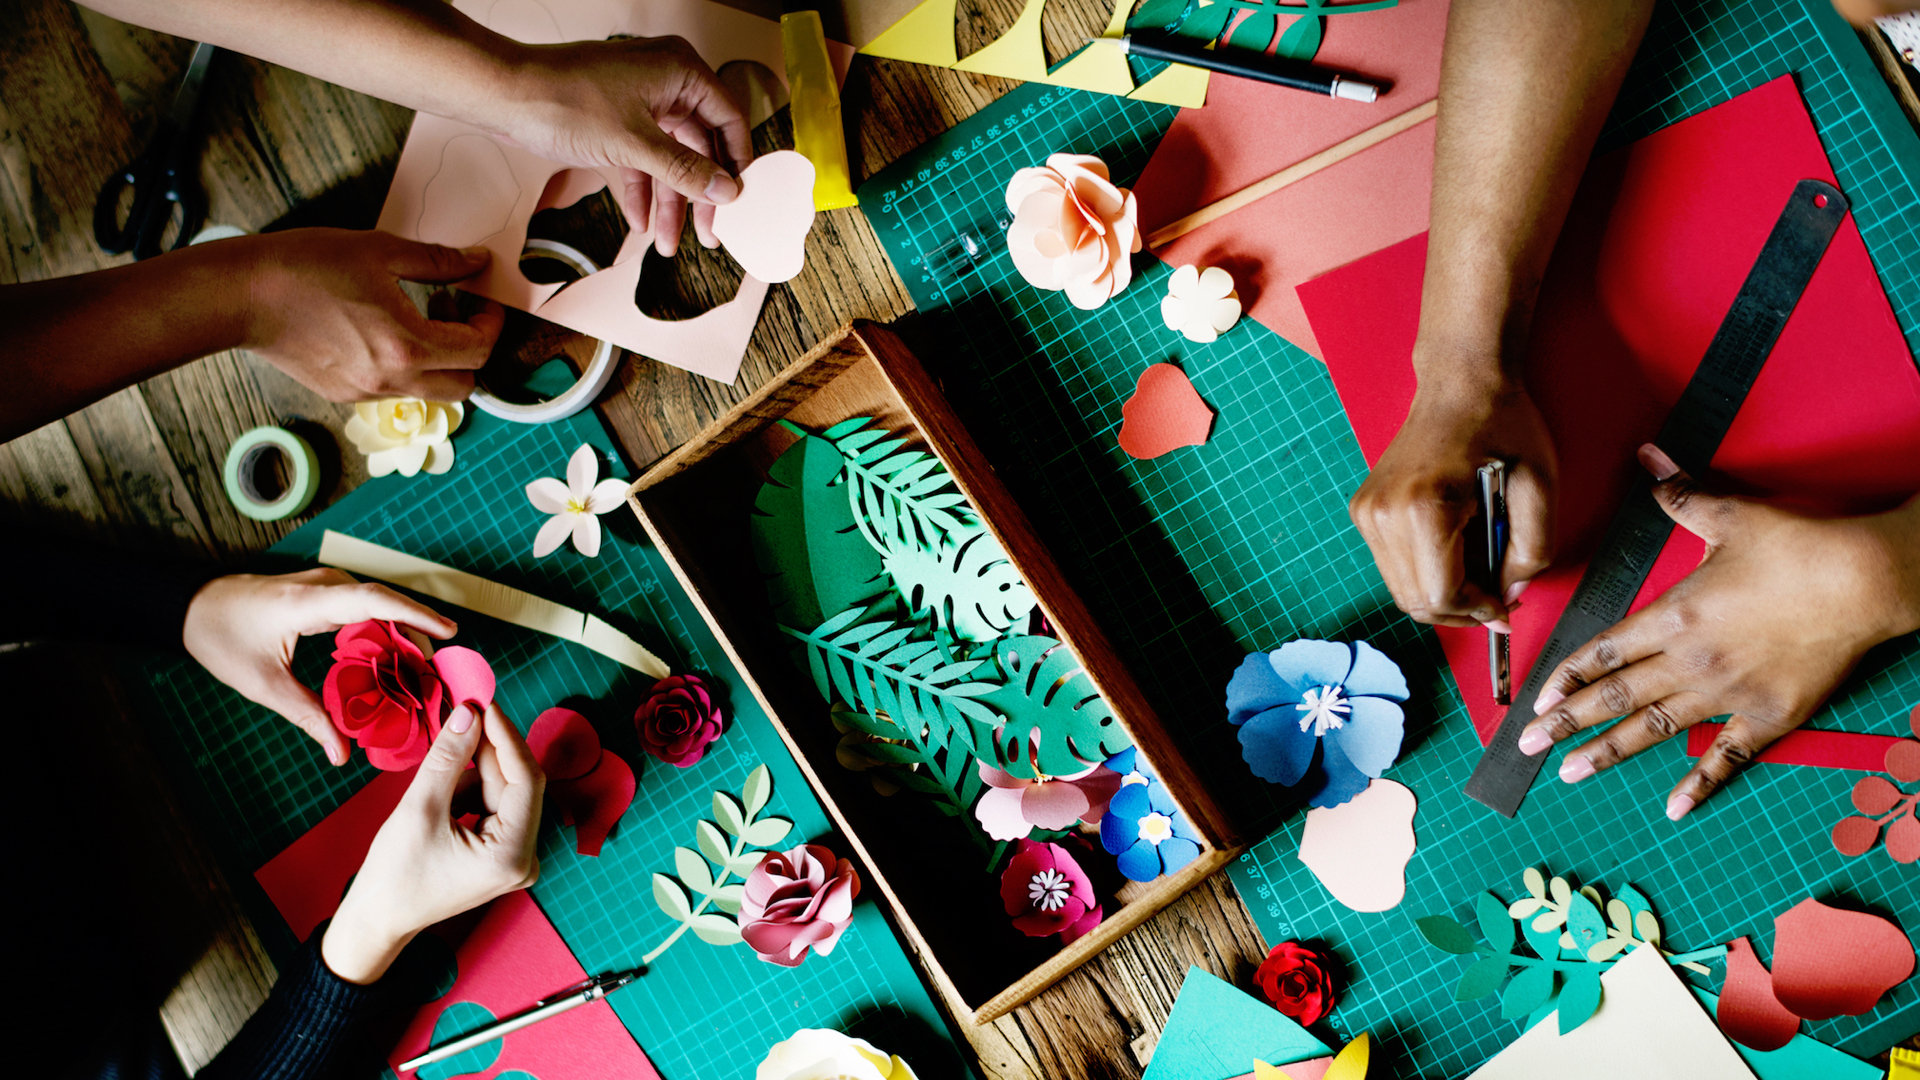 People being creative, making things with paper and craft materials on a table.